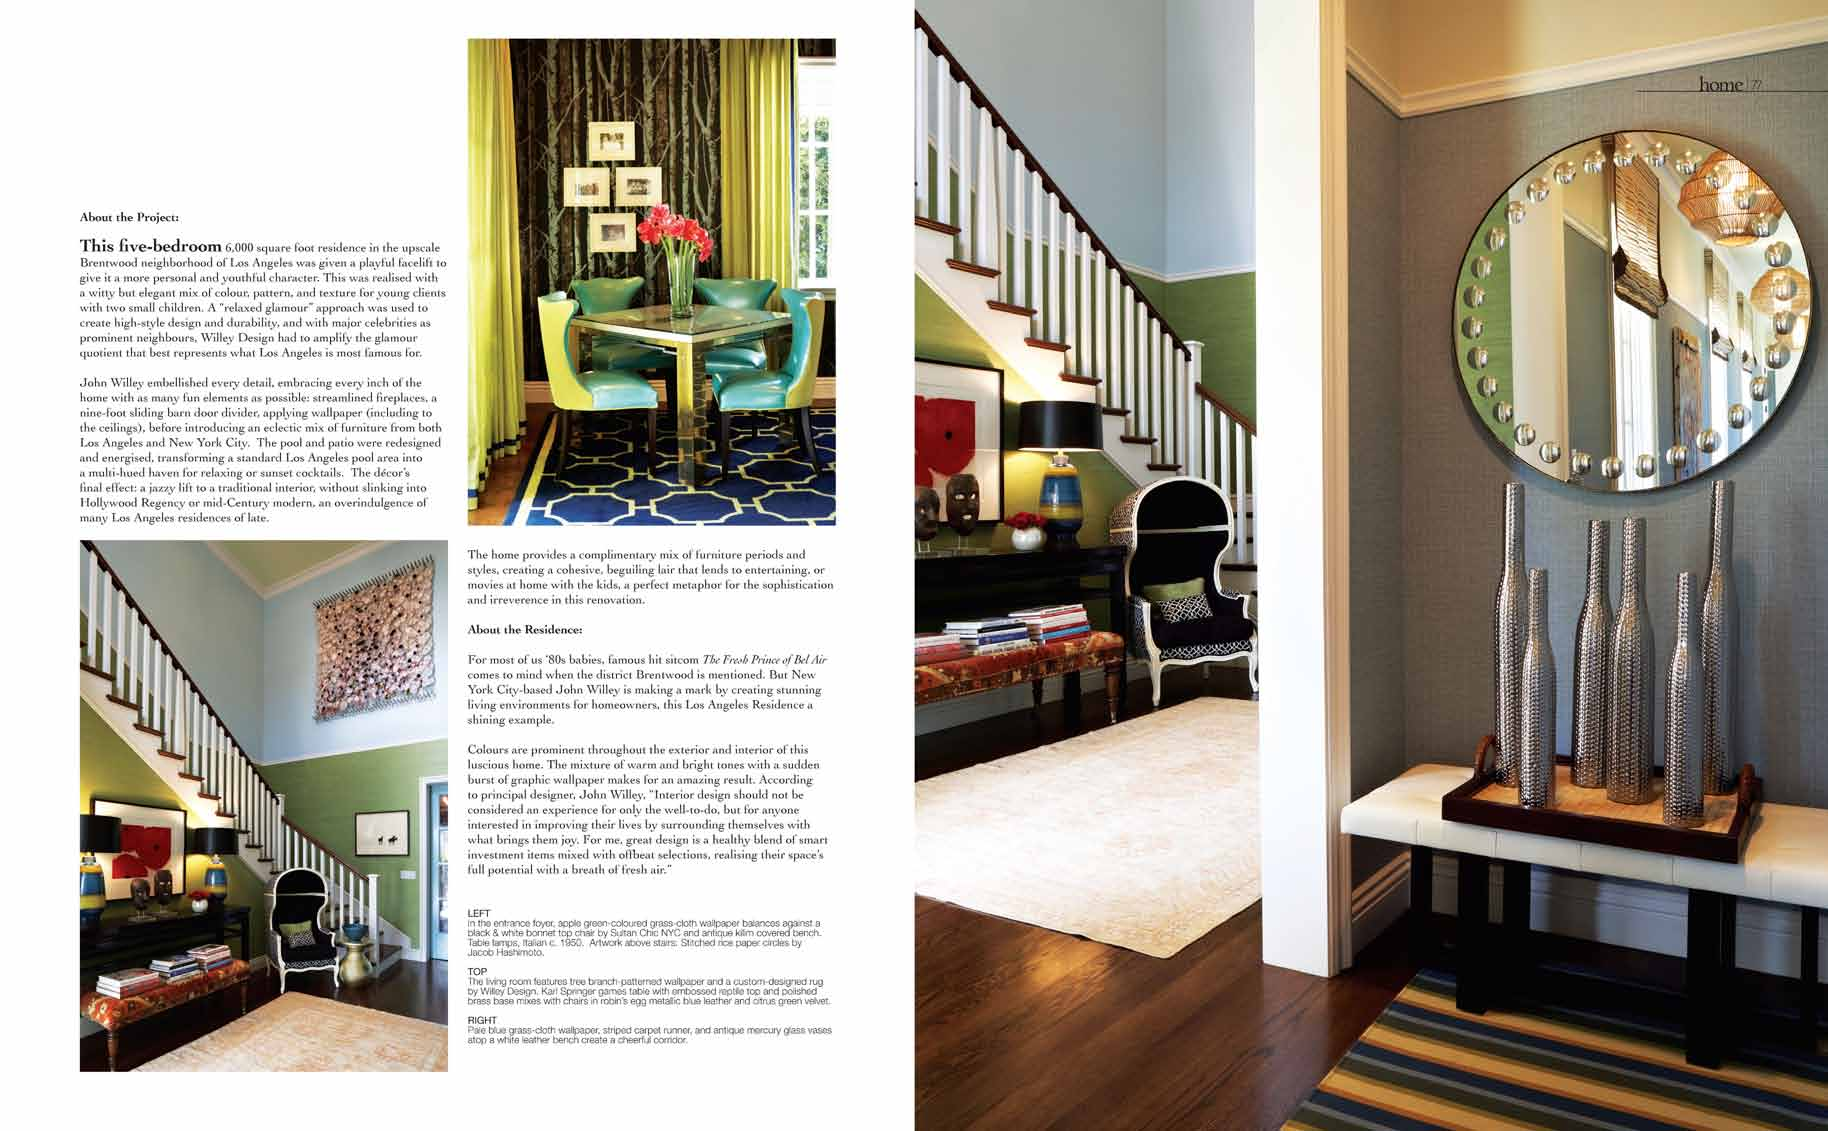 Home Concepts Malaysia 2012 JanFeb - Full Article low-res_Page_2.jpg